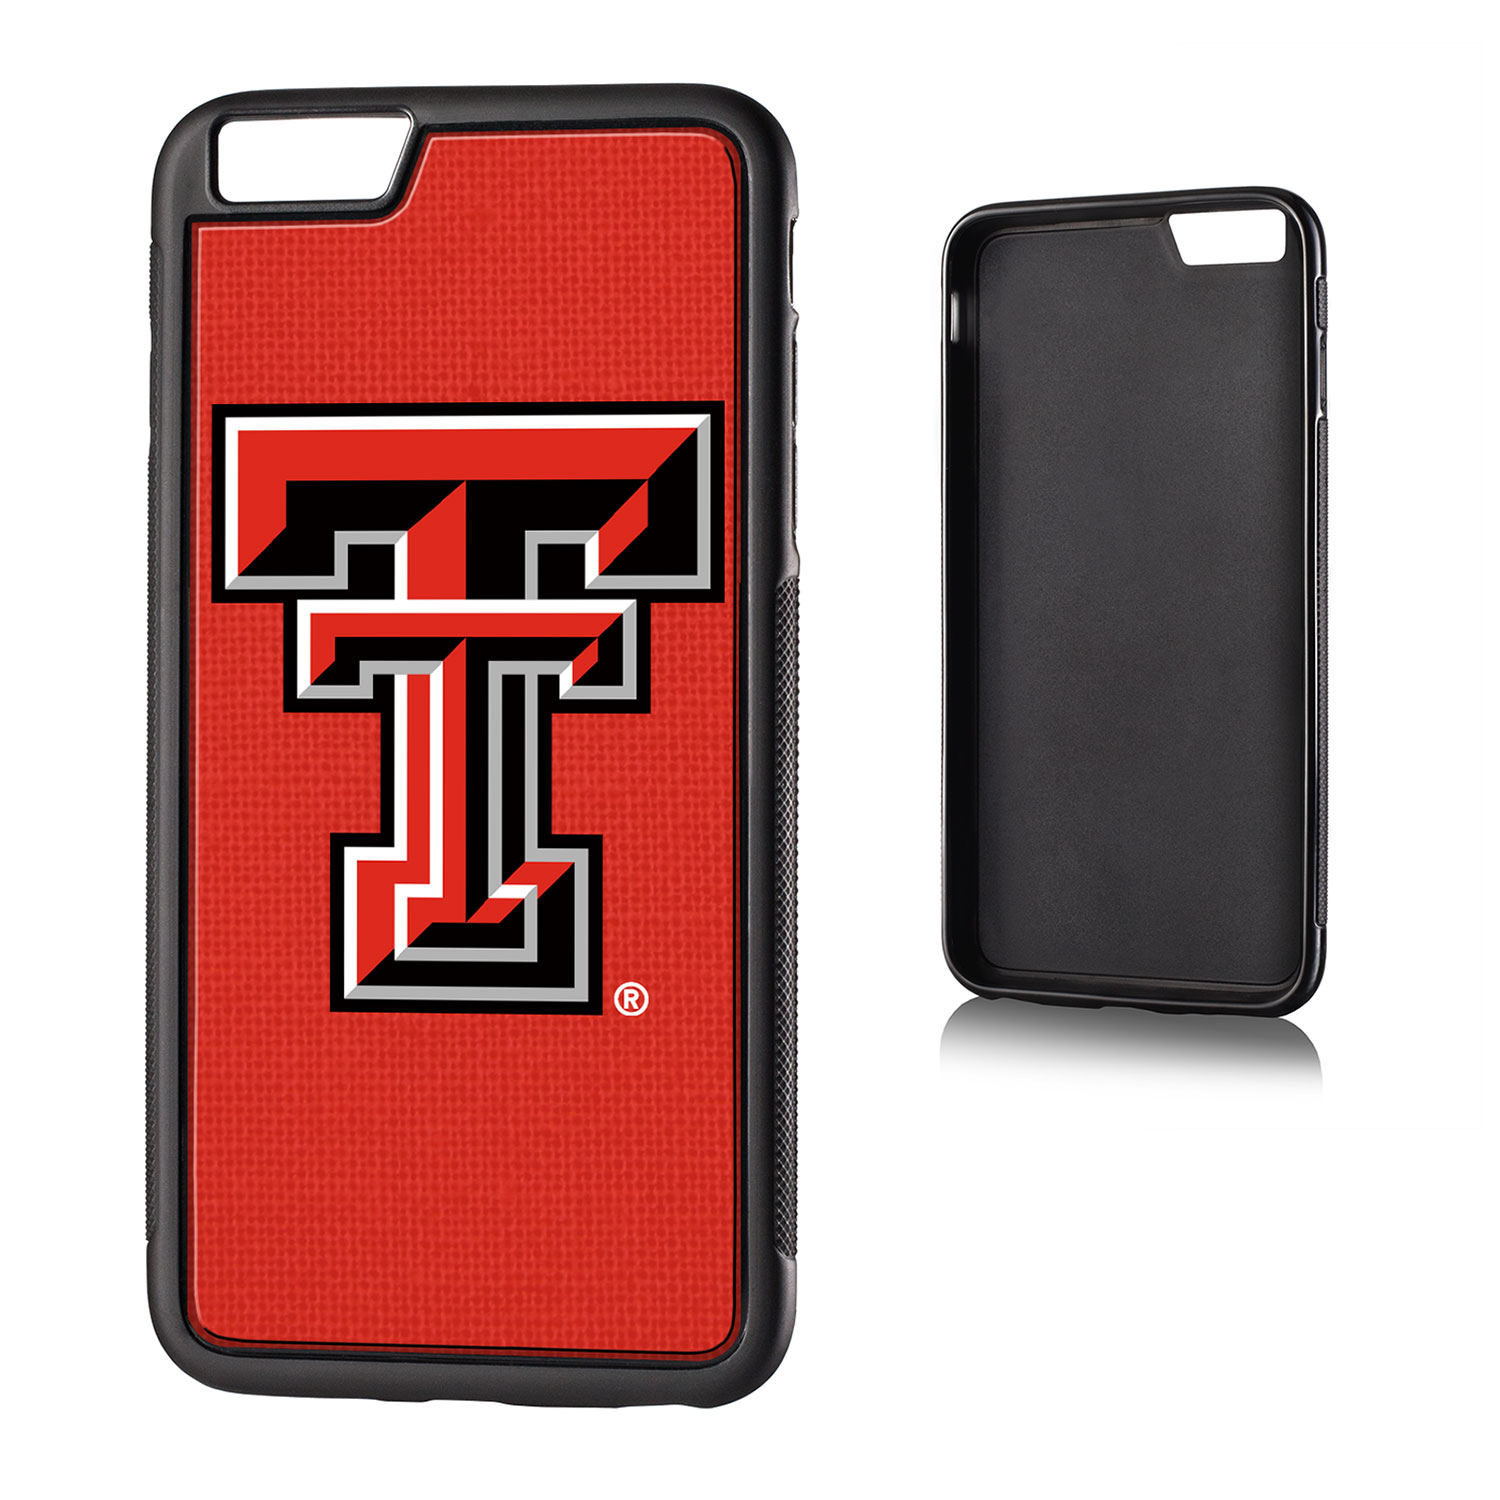 TT Texas Tech Red Raiders Solid Bump Case for iPhone 6 Plus